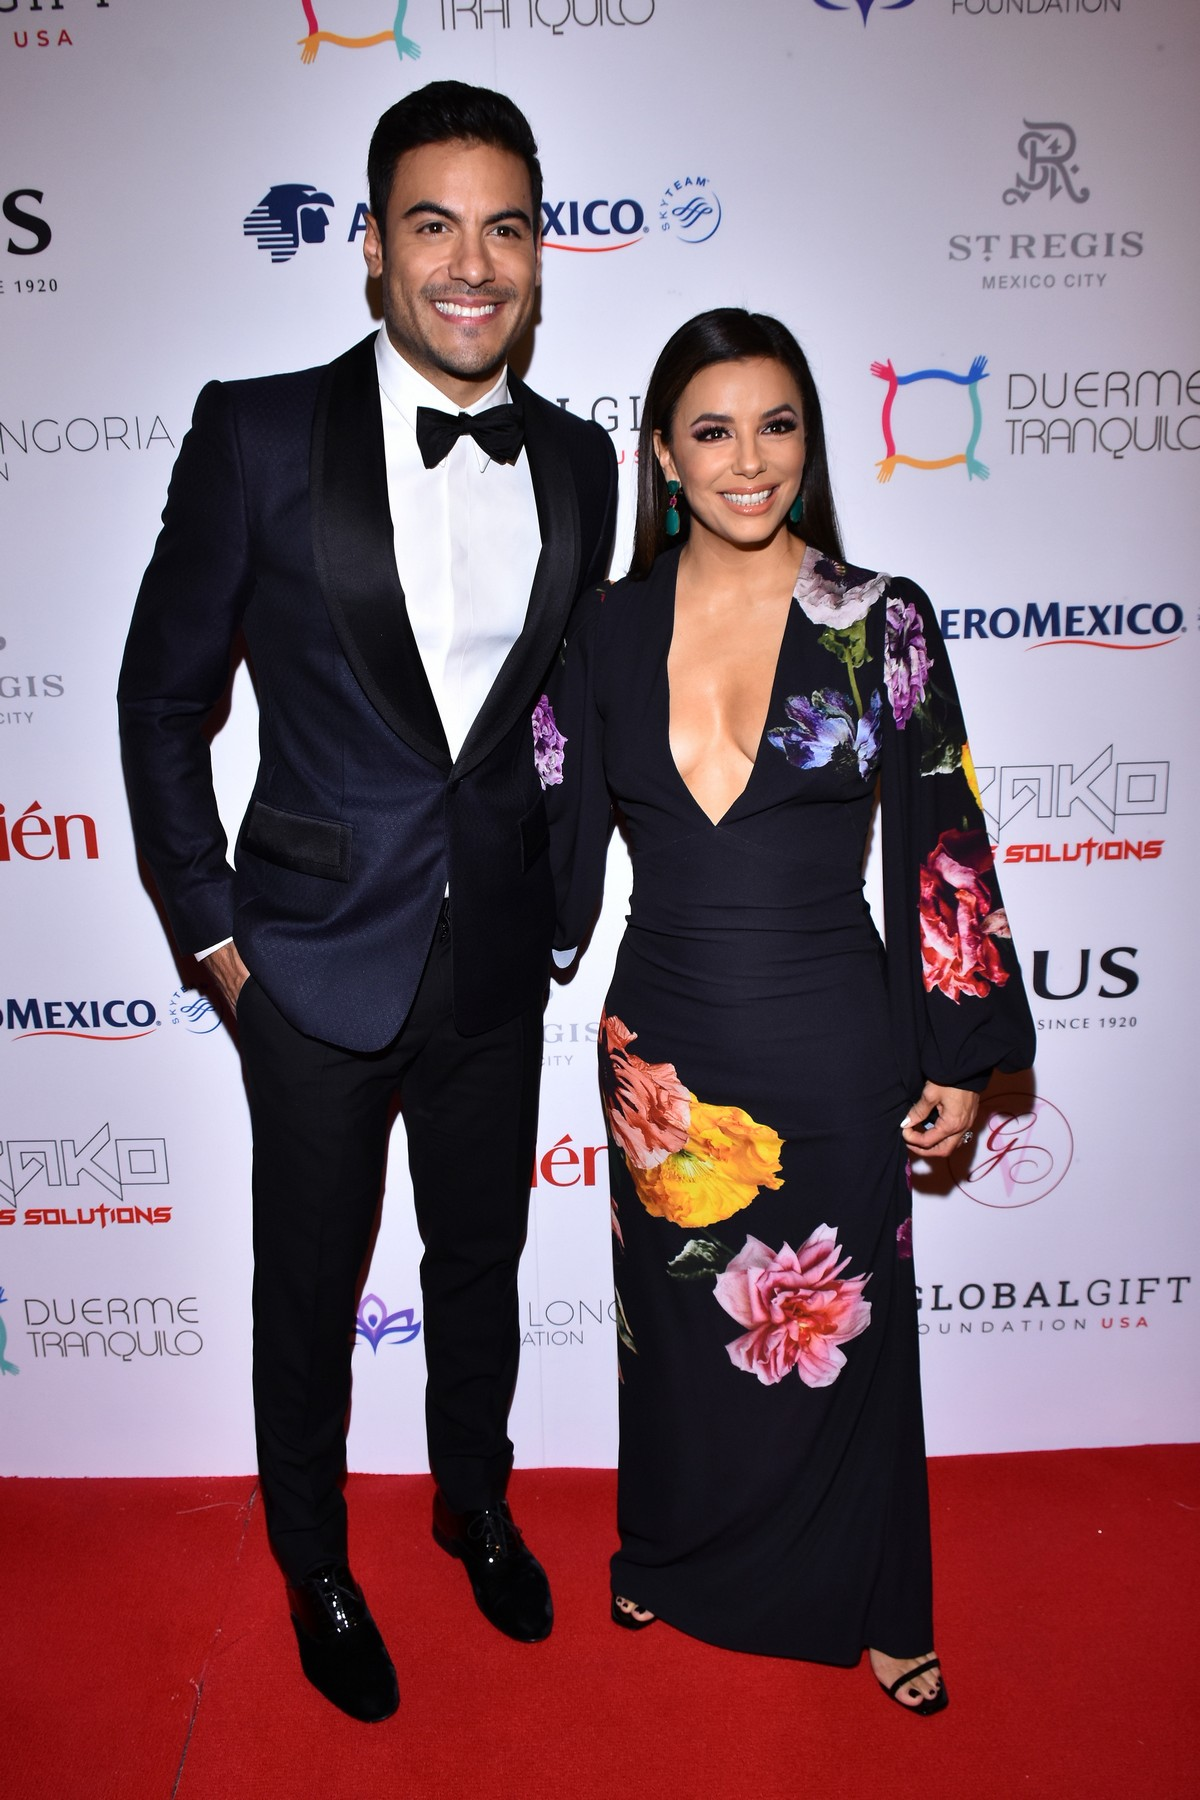 Eva Longoria and Carlos Rivera attends 5th Global Gift Foundation Gala in Mexico City 2019/11/19 3